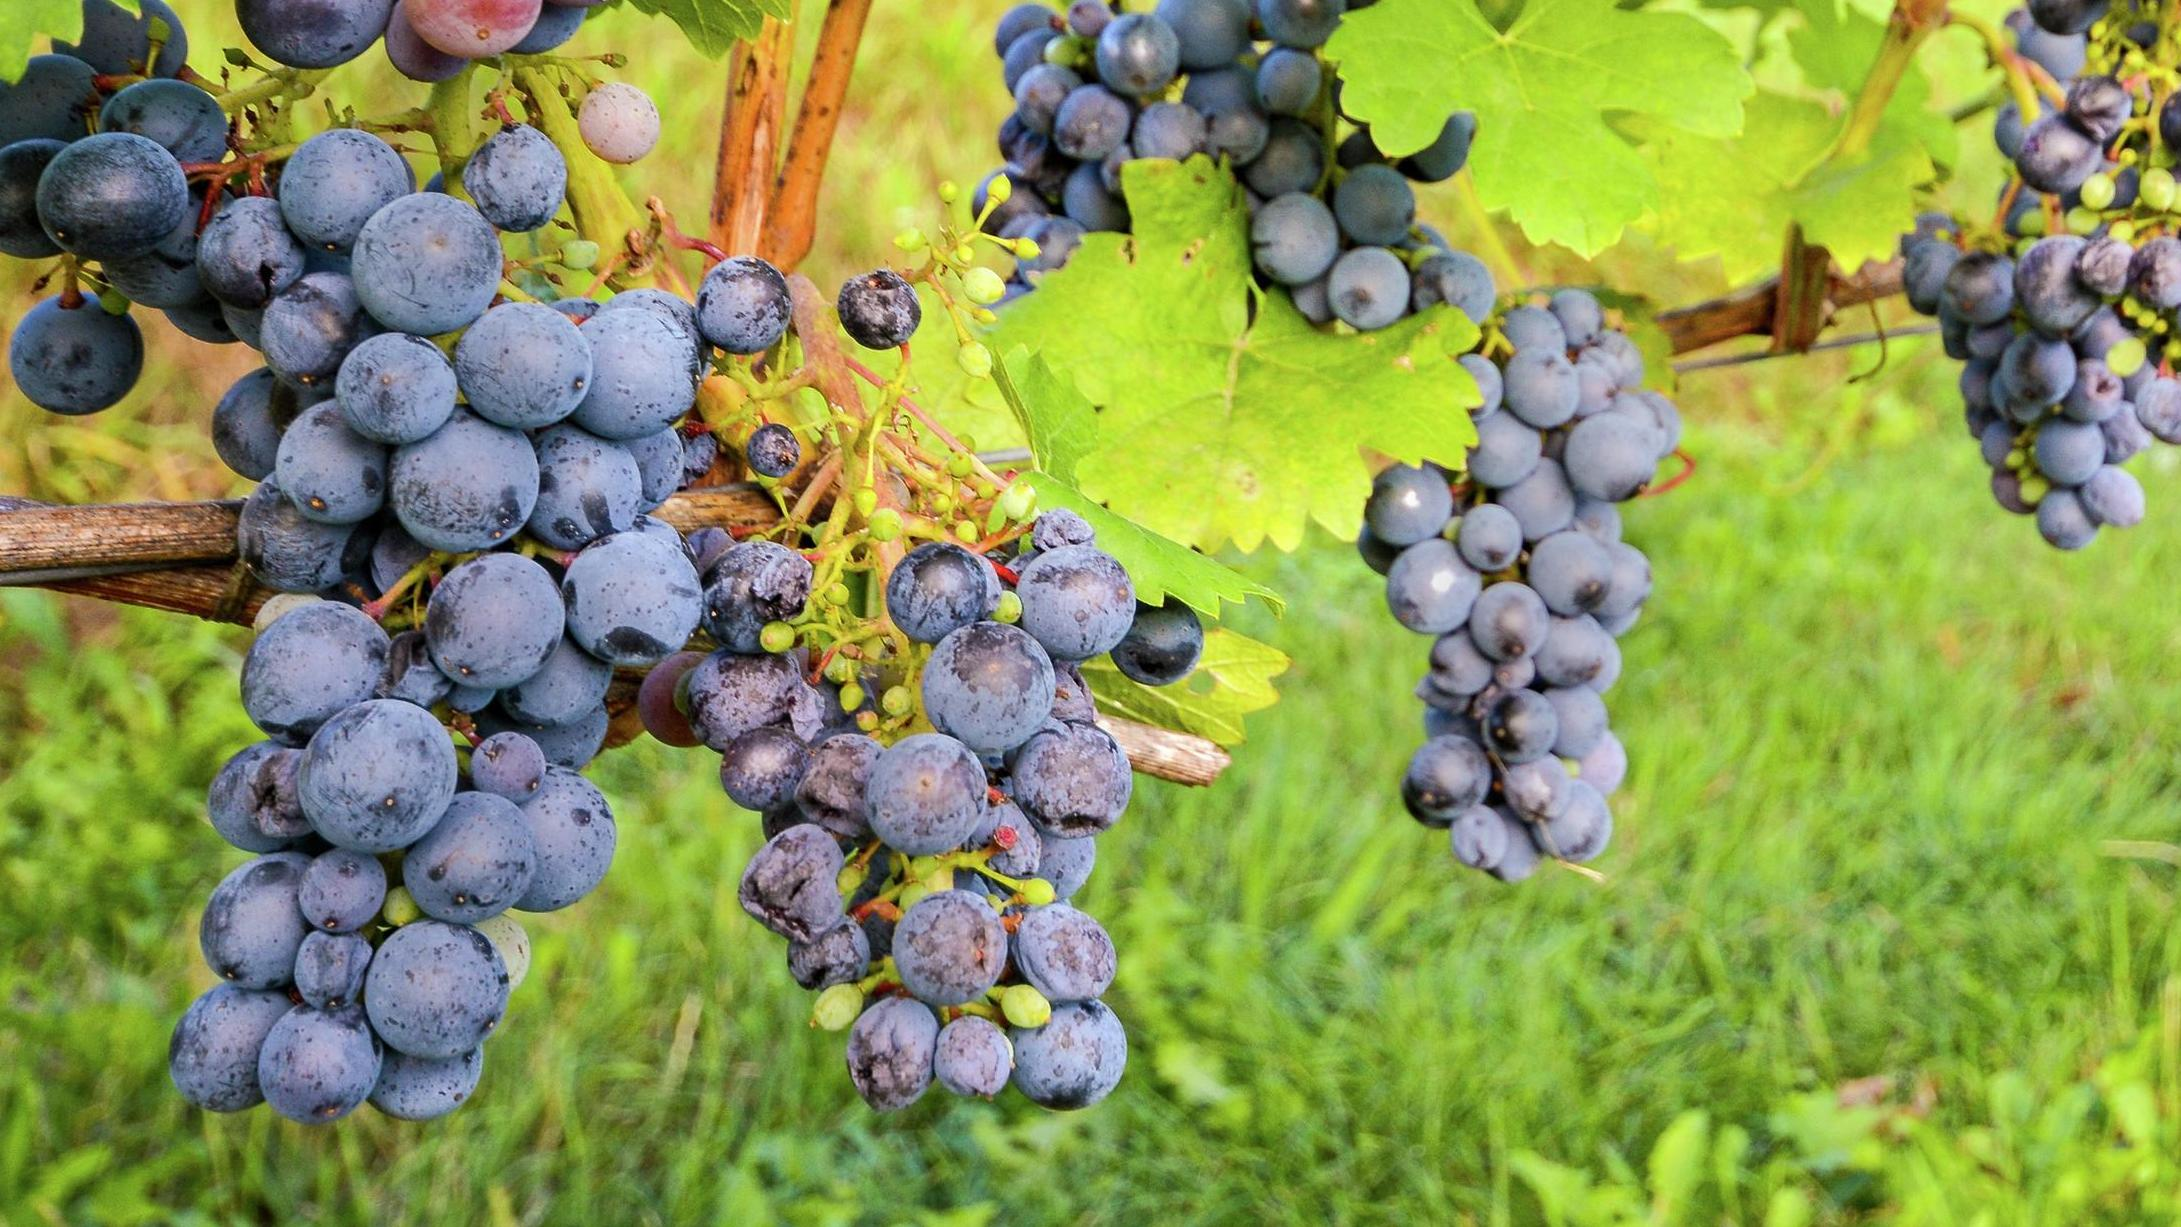 black grapes on a grape vine in the outdoors